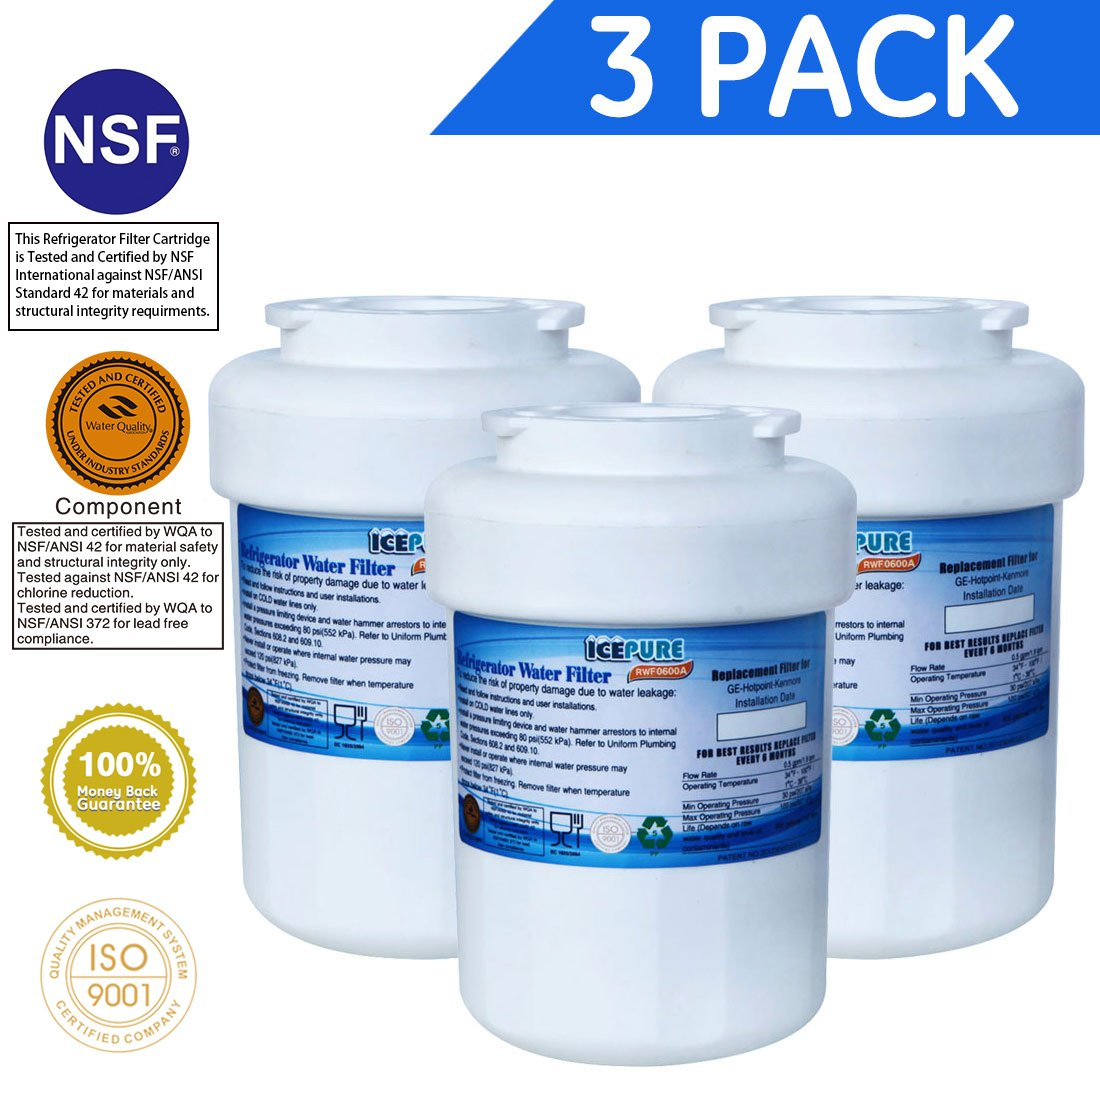 Amazon icepure rwf0600a compatible with ge mwfmwfpmwf3pk amazon icepure rwf0600a compatible with ge mwfmwfpmwf3pkmwfamwfapmwfintgwfgwf01gwf06gwfahwfhwfafmg 1 refrigerator water filter 3pack home biocorpaavc